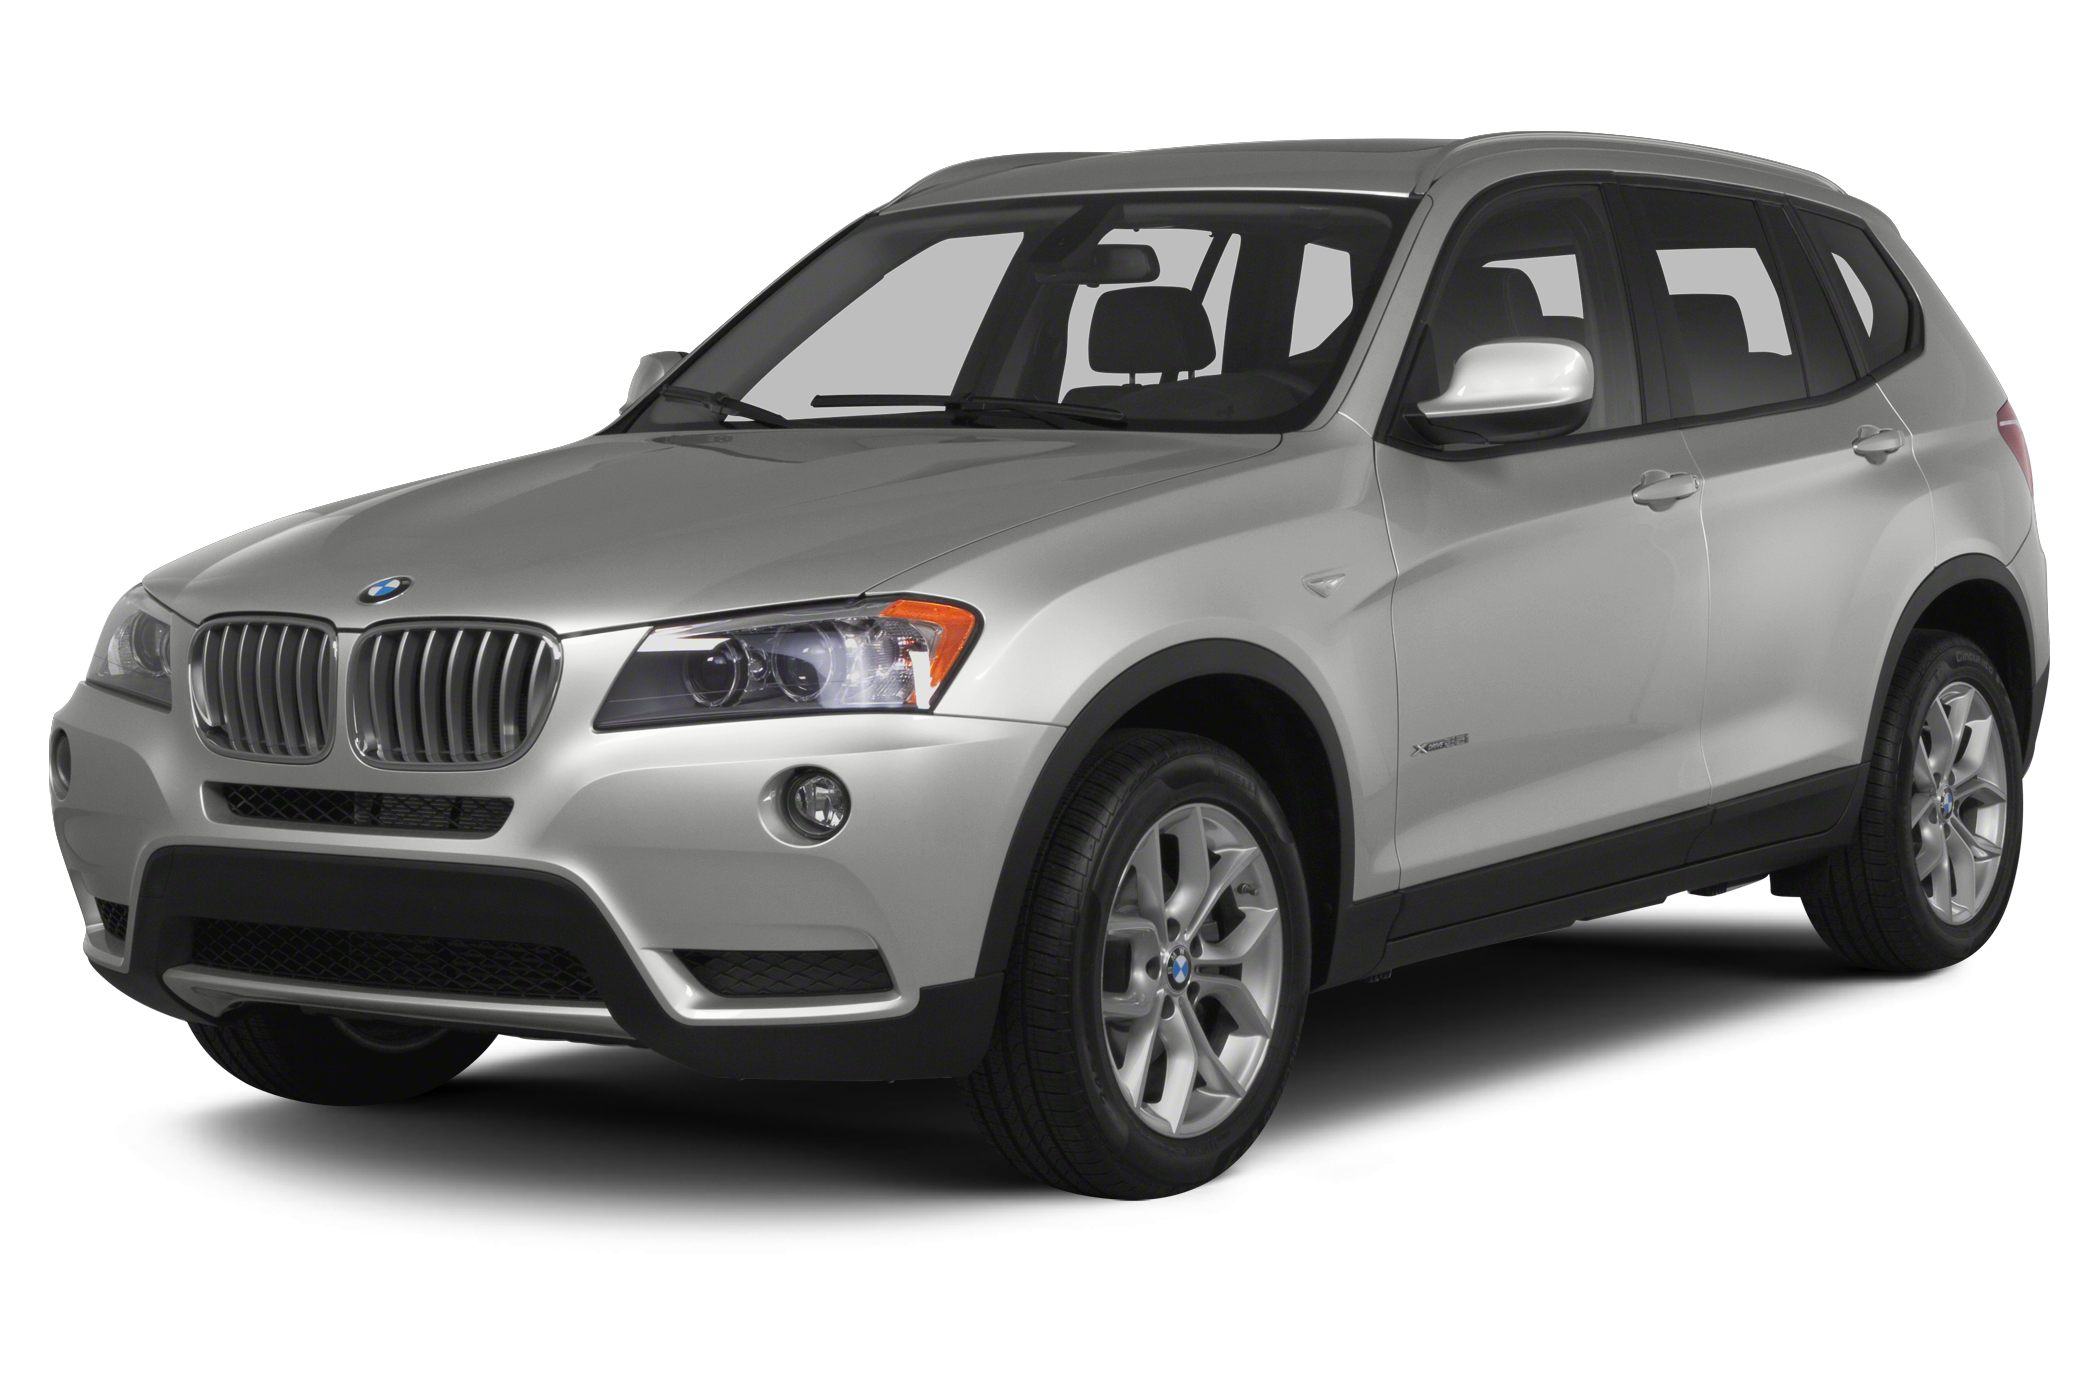 2013 BMW X3 XDrive28i SUV for sale in Ephrata for $27,500 with 61,264 miles